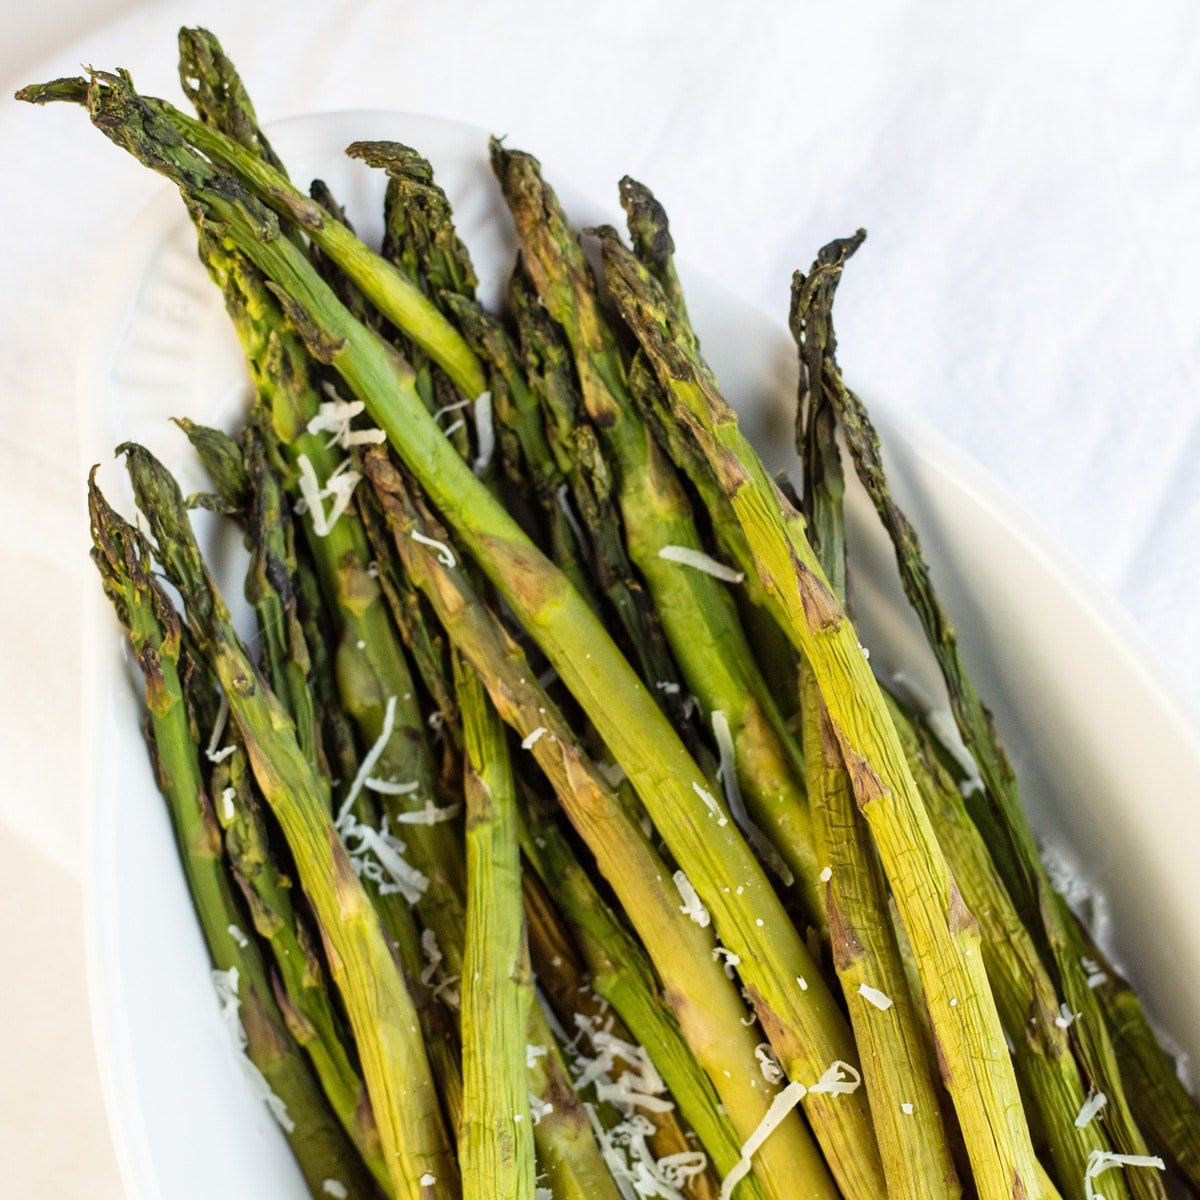 Smoked asparagus with freshly grated parmesan cheese on light background.